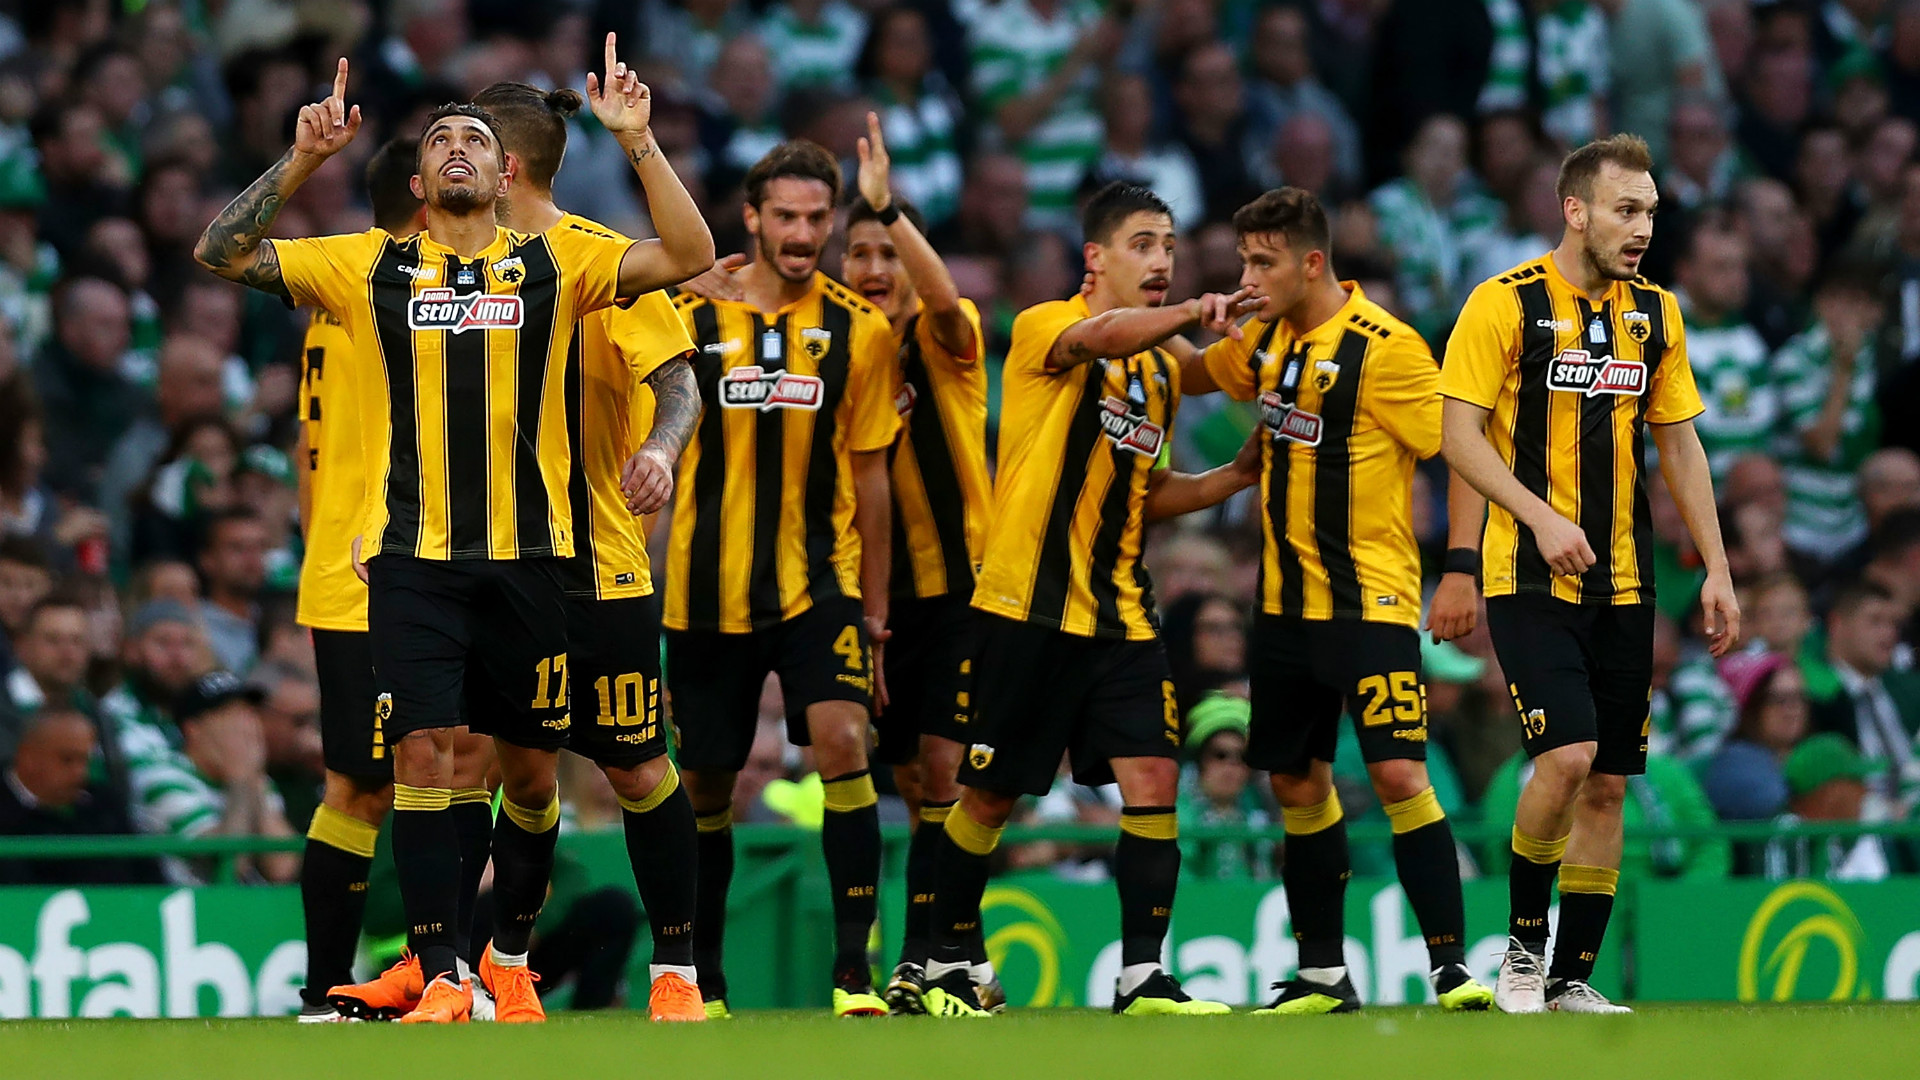 AEK Athens Champions League